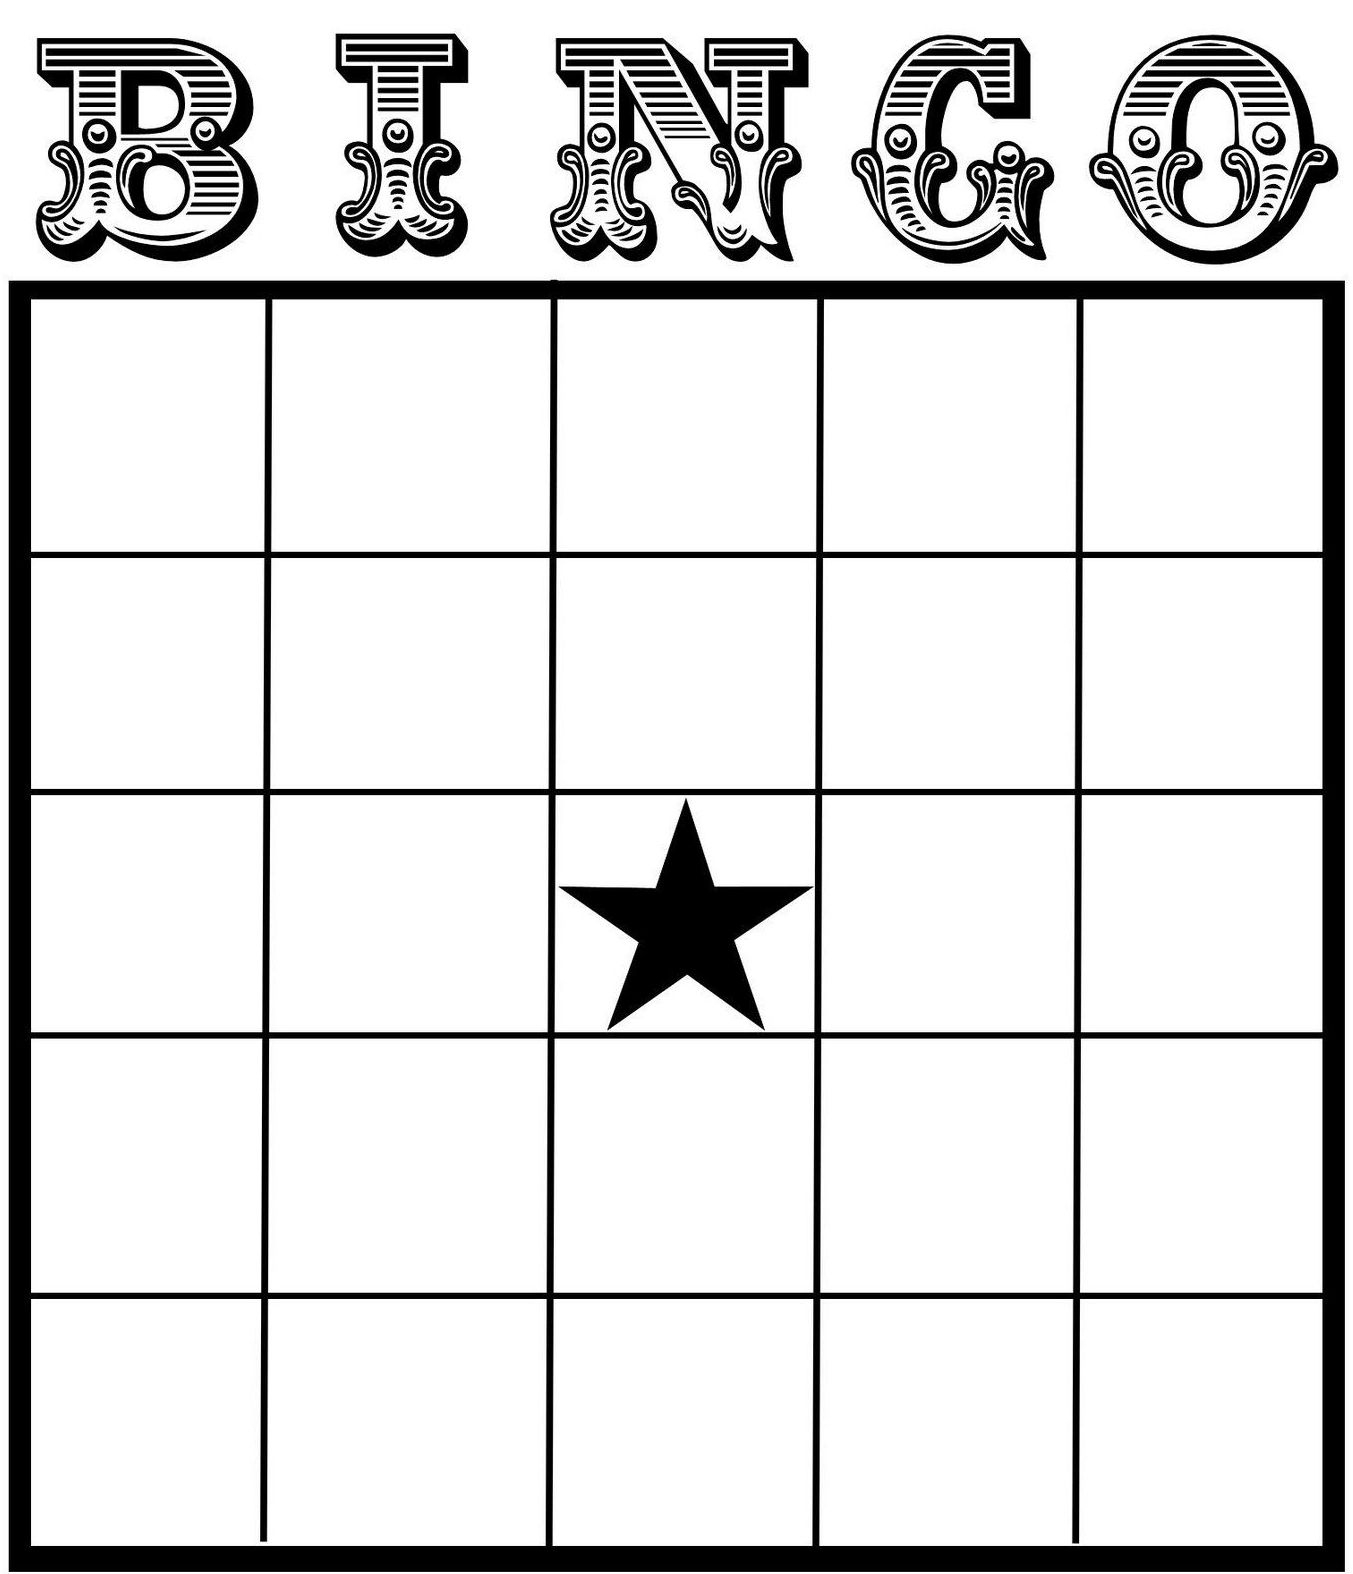 Free Printable Bingo Card Template - Set Your Plan & Tasks With Best - Free Printable Bingo Cards With Numbers